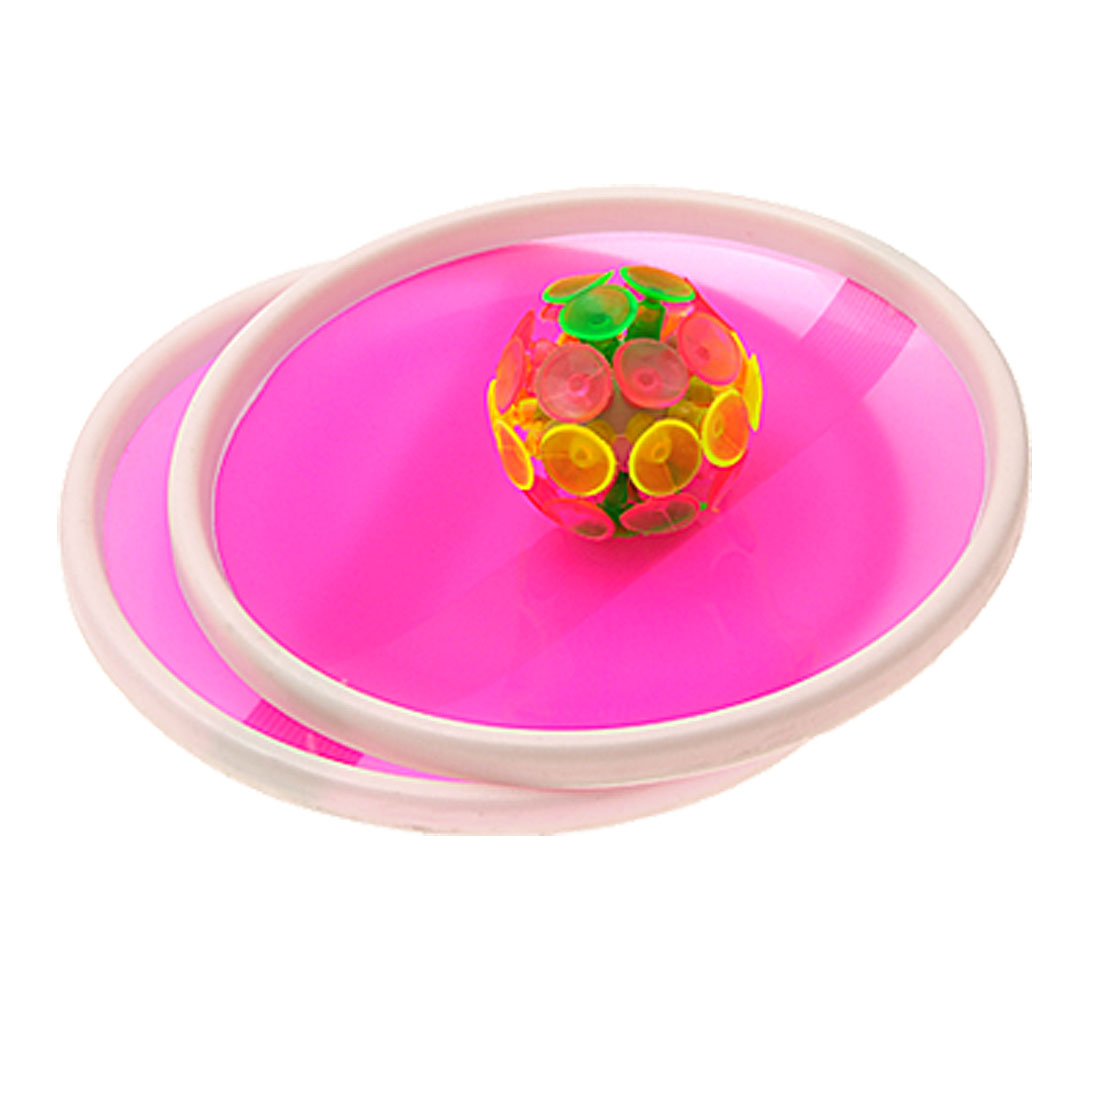 Creative Soft Sticky Ball Game with 32 Suction Cup and 2 Round Bats